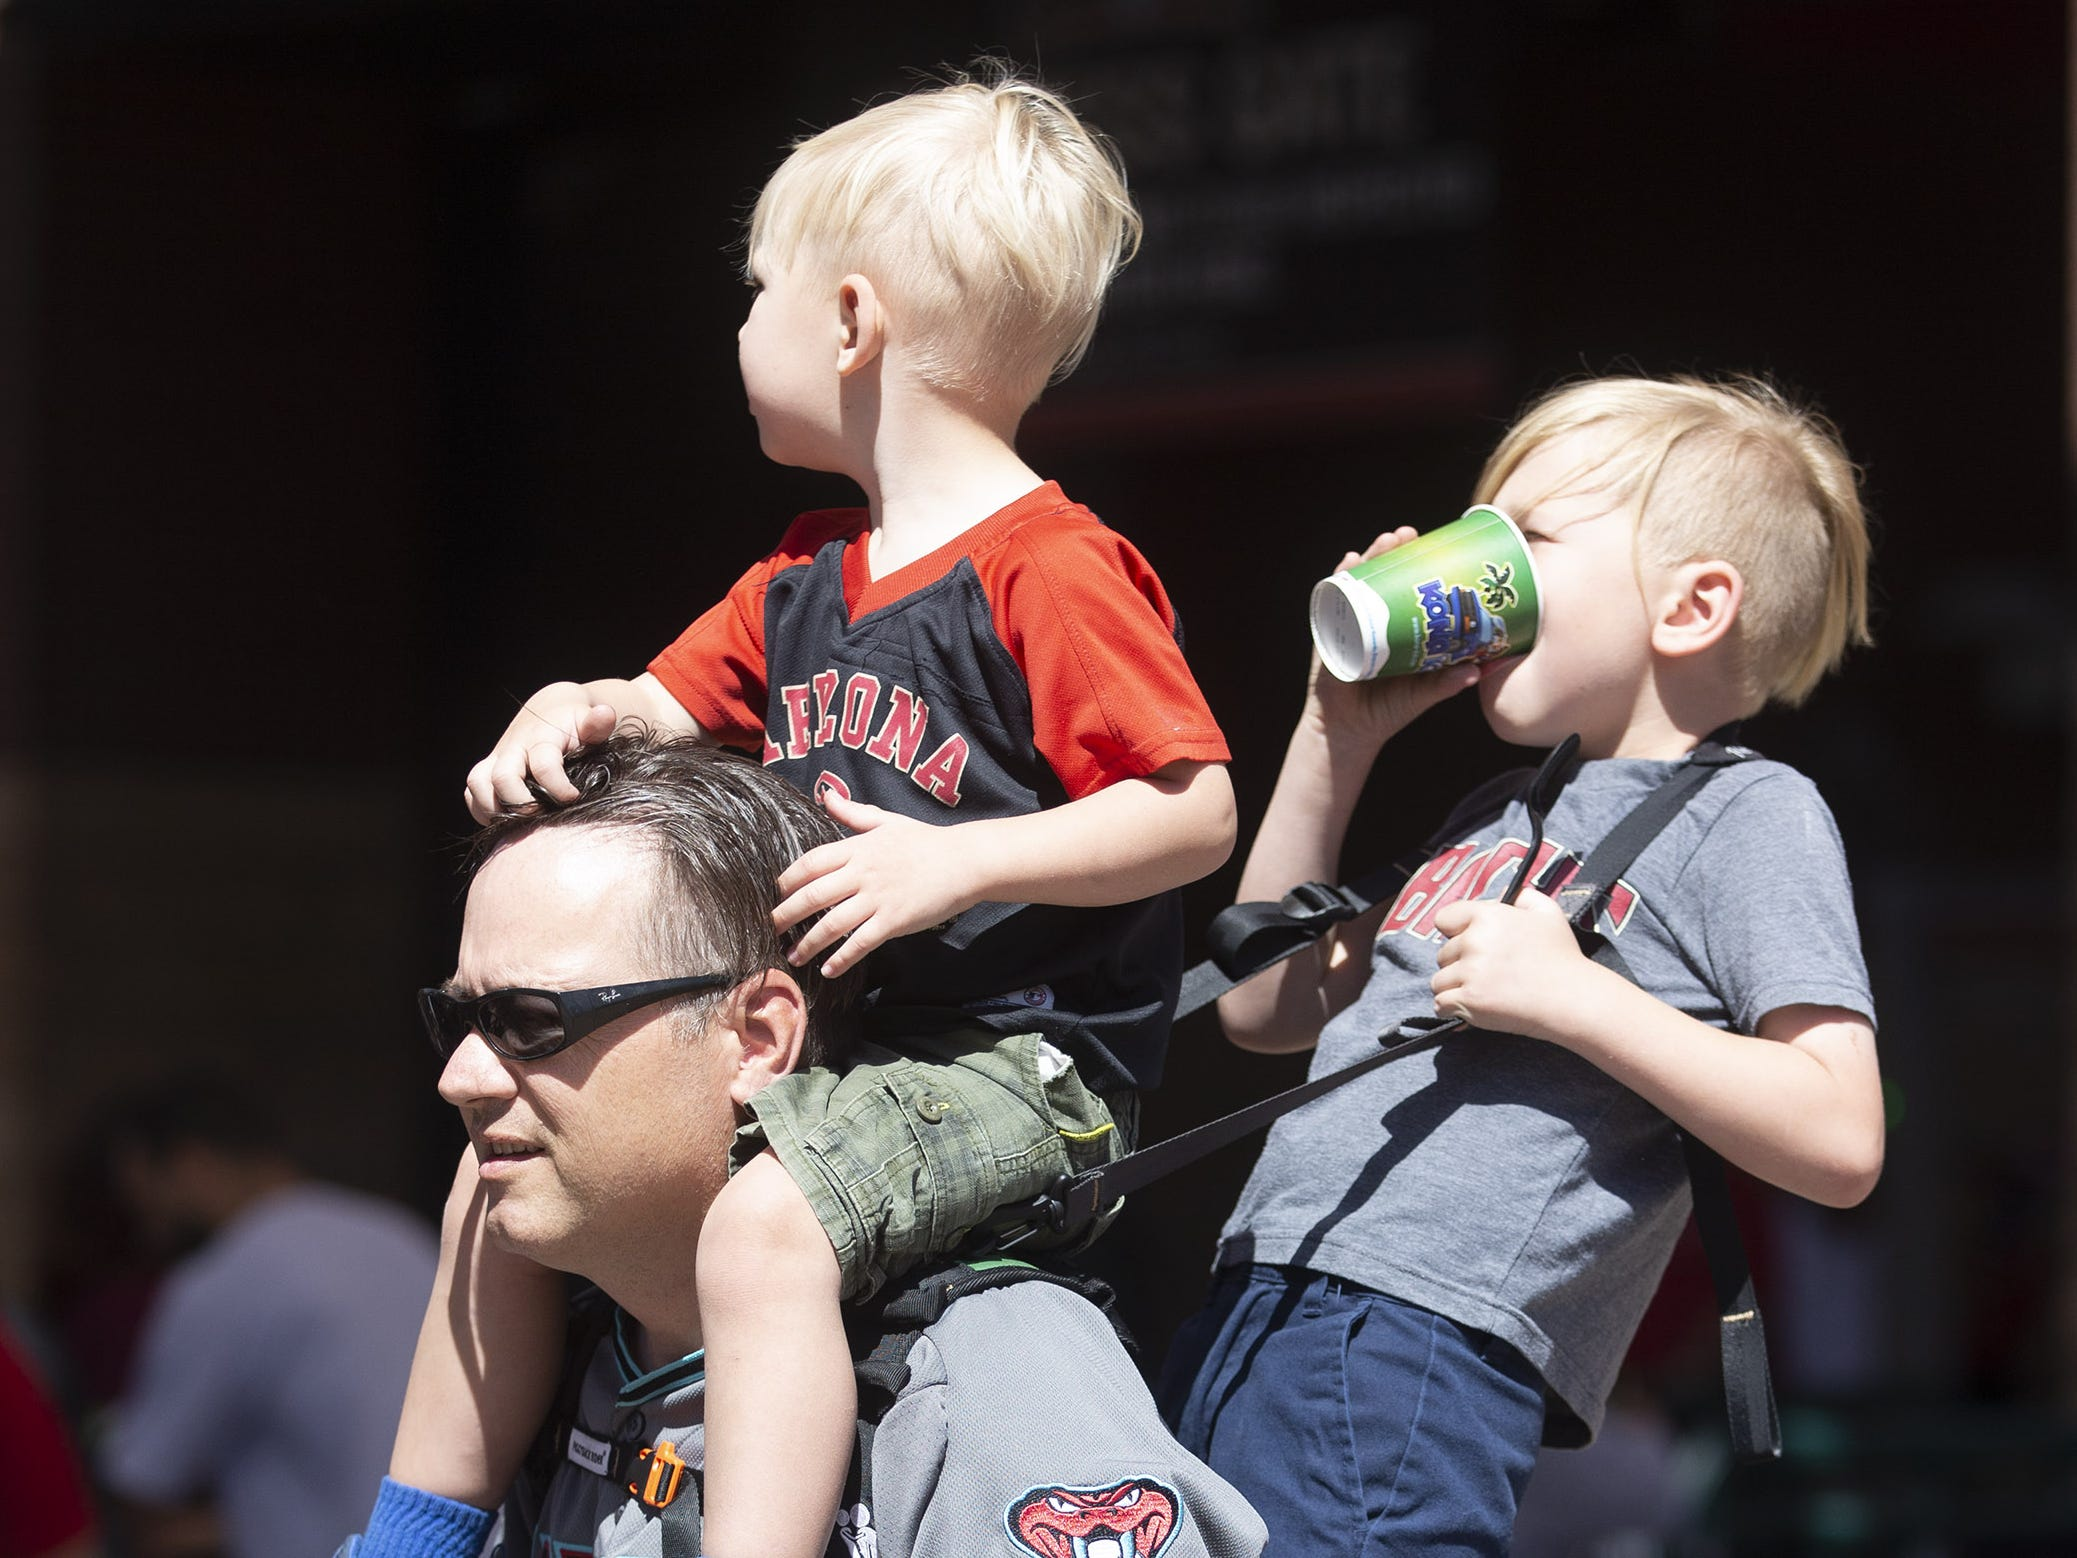 Patrick Flannagan, of Mesa, carries his sons Finn, 3, and Liam, 6, on his back during Opening Day at Chase Field in Phoenix on April 5.